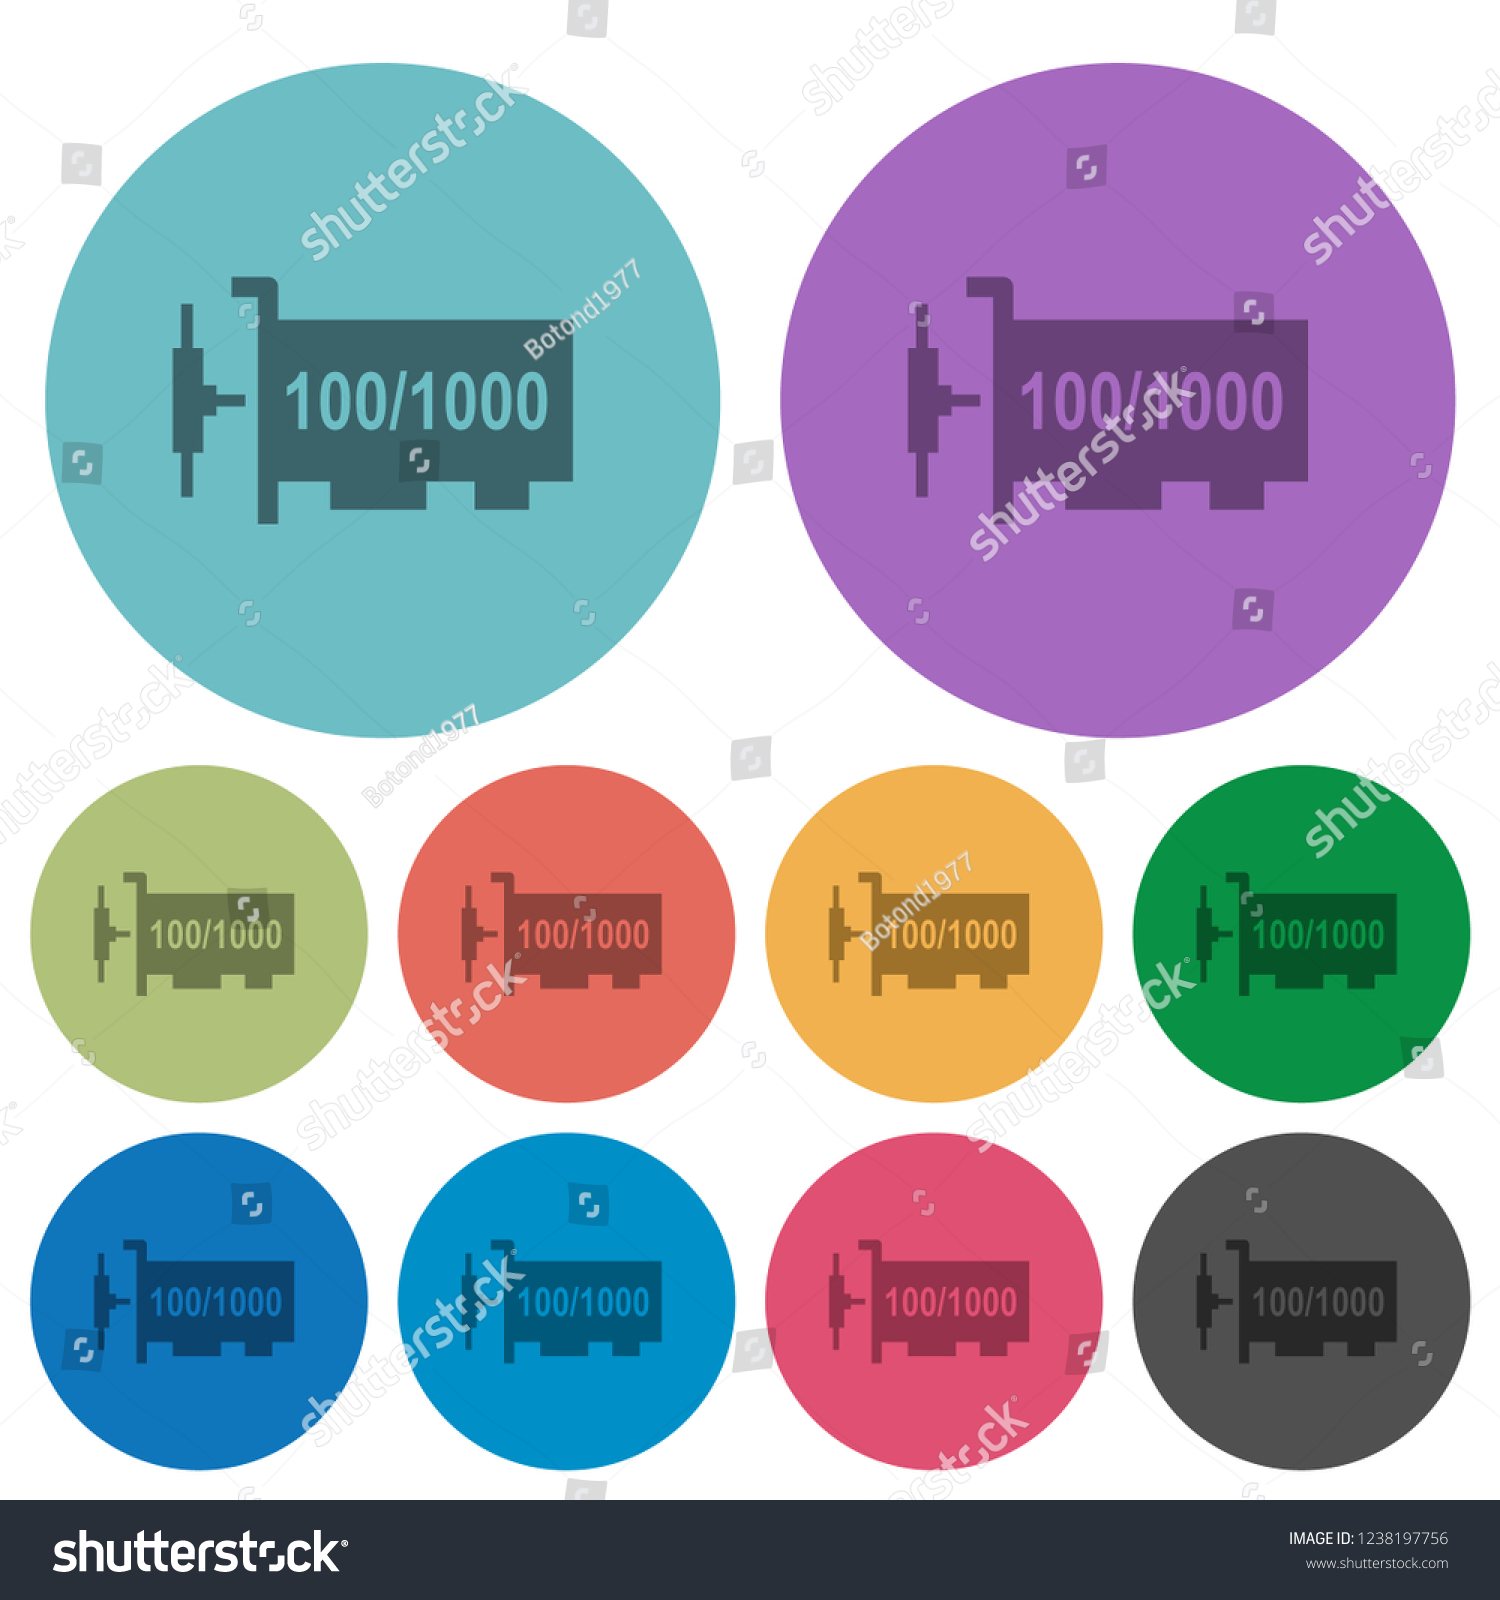 Gigabit Ethernet Network Controller Darker Flat Stock Vector Icons On Color Round Background